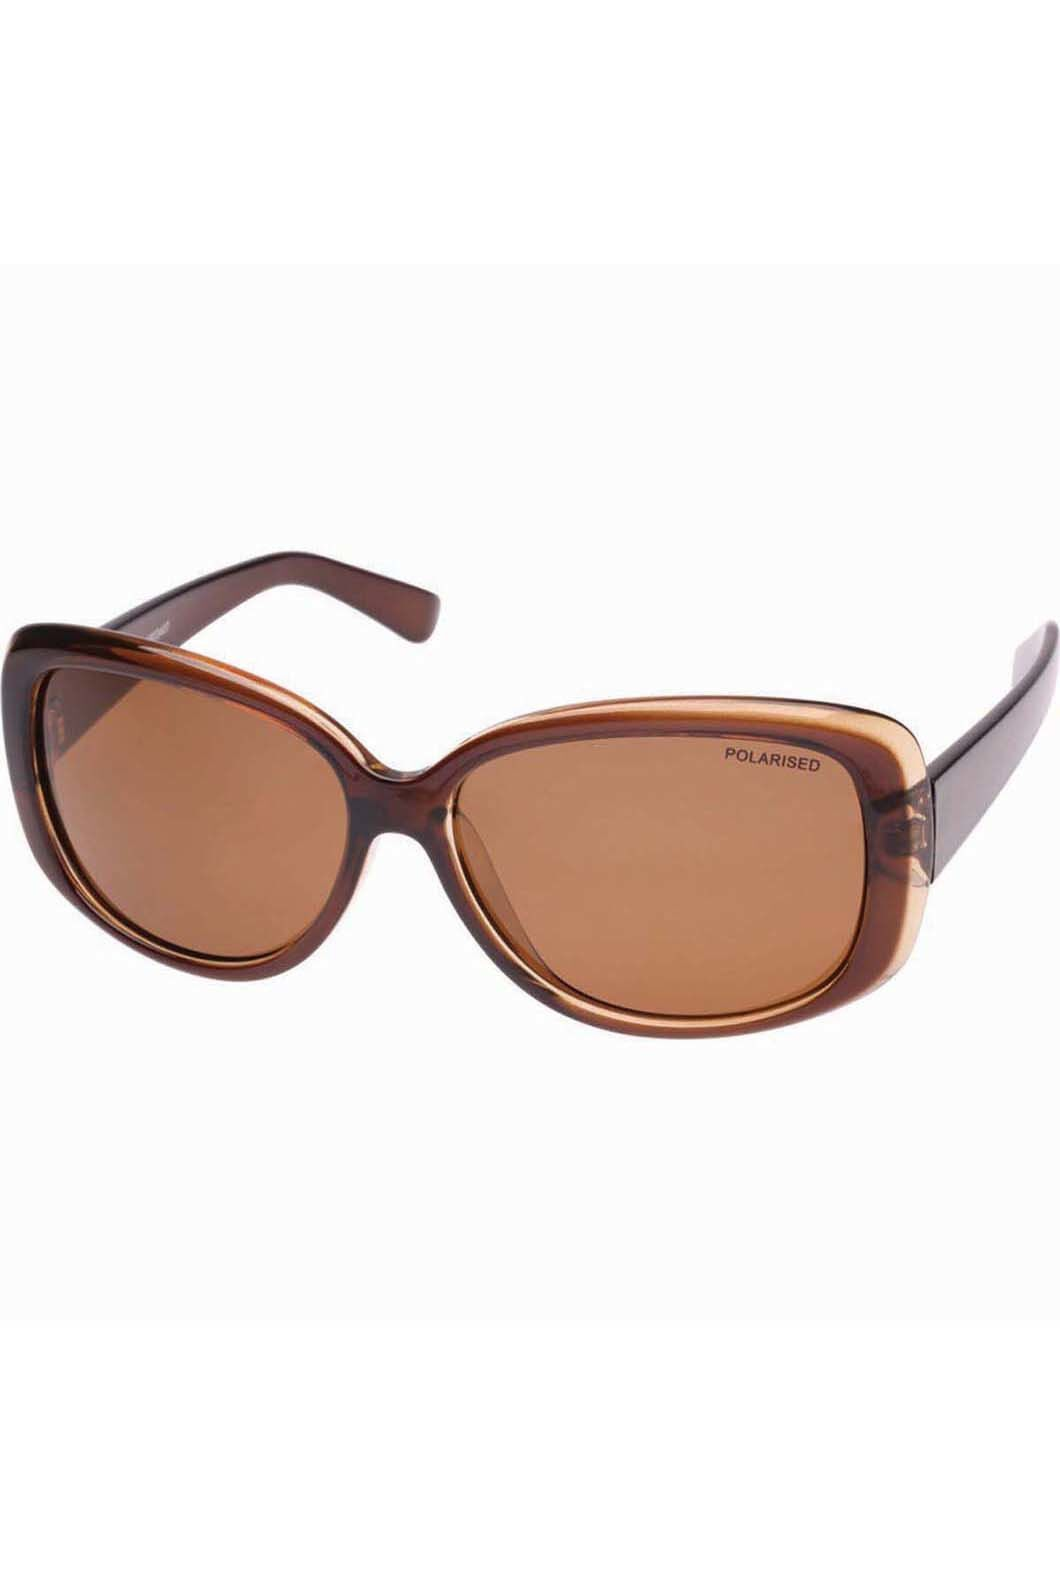 Cancer Council Women's Garland Sunglasses One Size Fits Most, CRYSTAL CHOCOLATE, hi-res